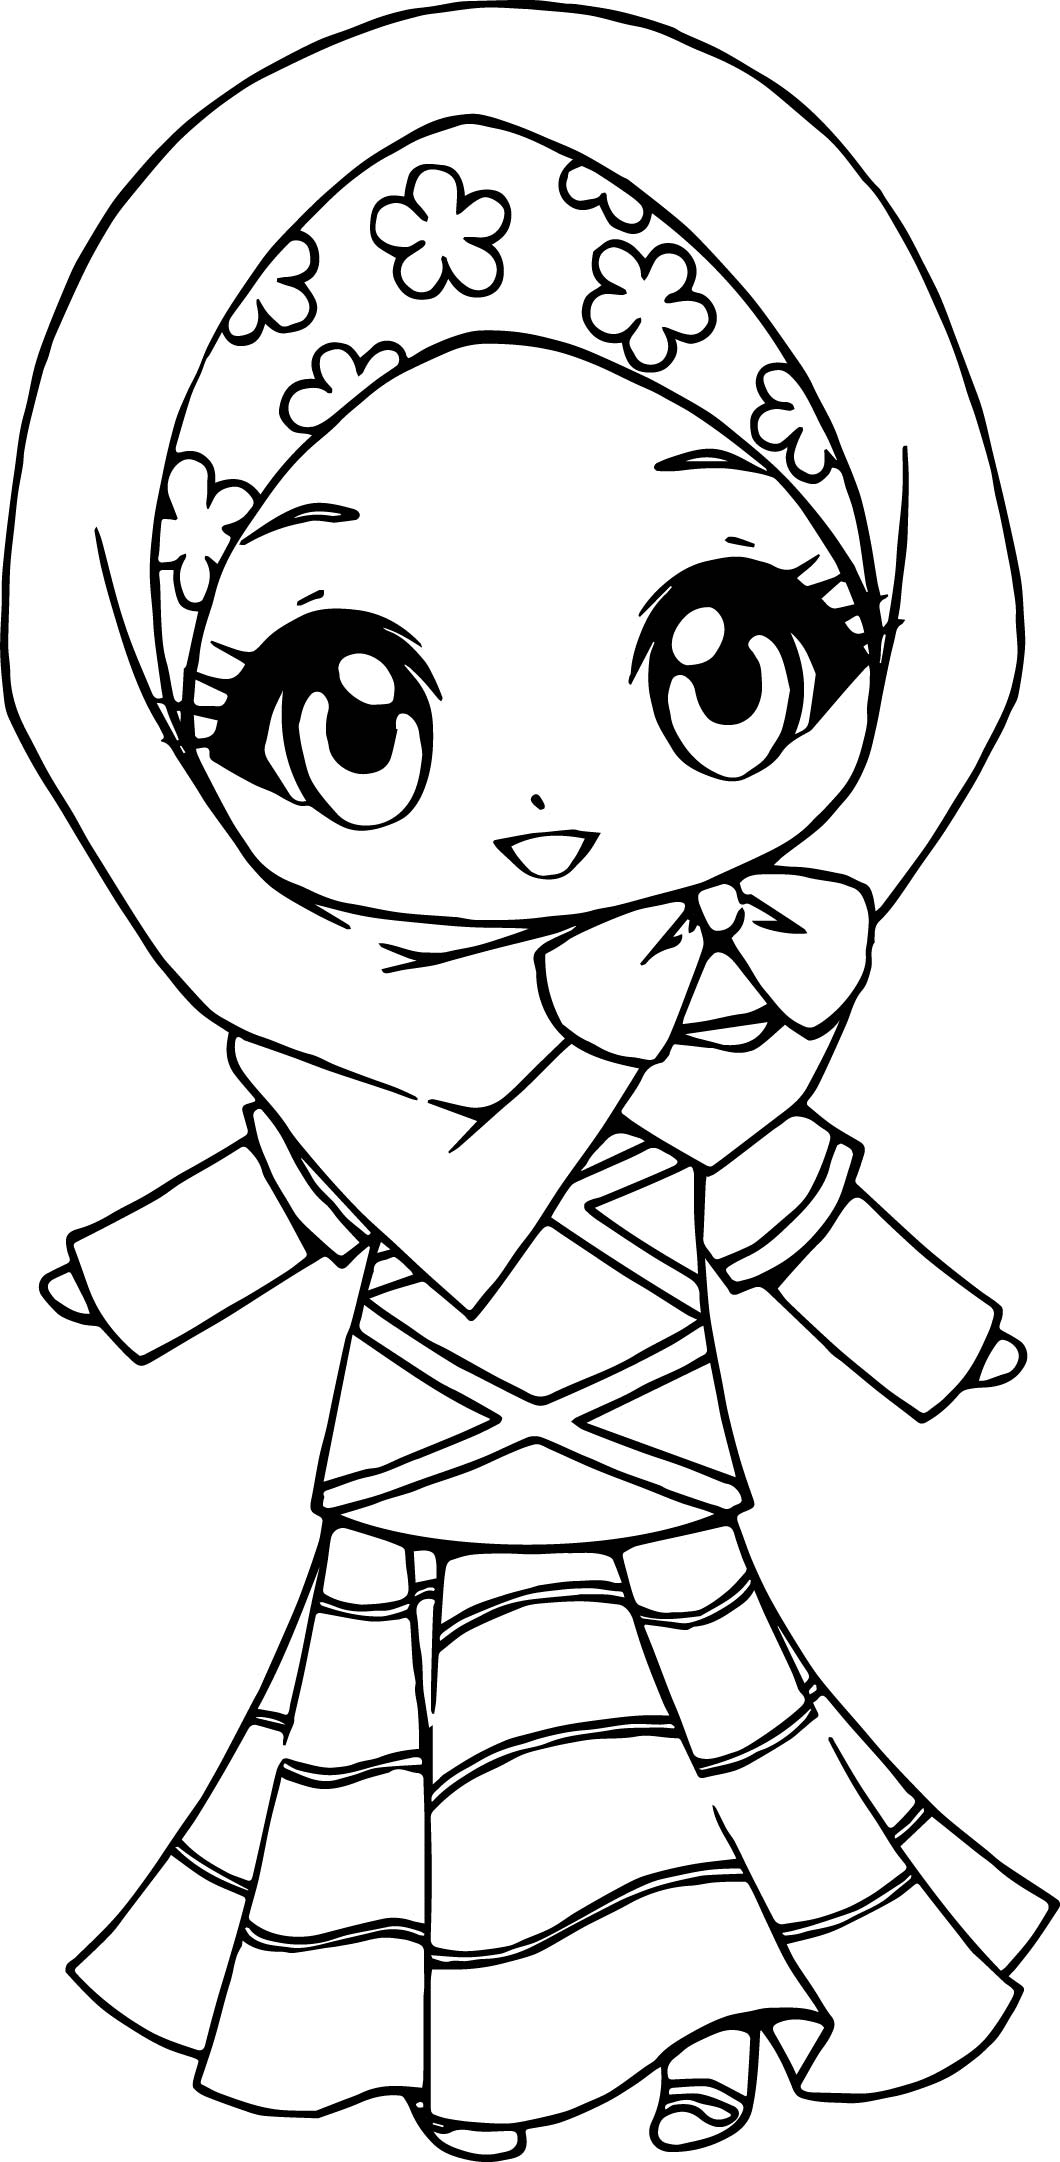 muslim anime coloring page wecoloringpage